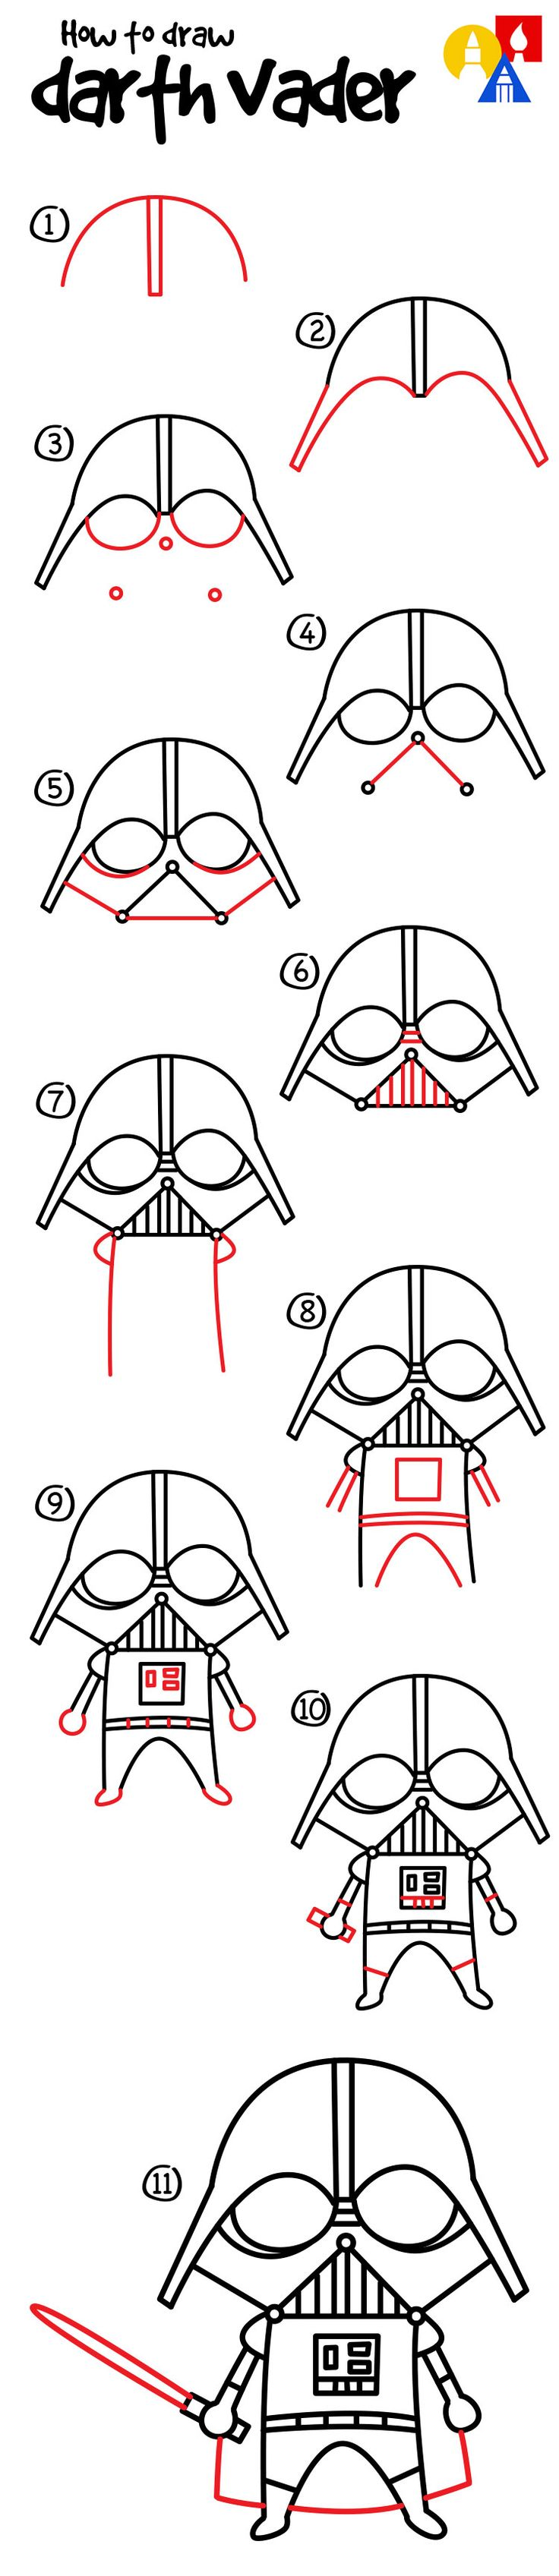 How To Draw A Cartoon Darth Vader - Art For Kids Hub -